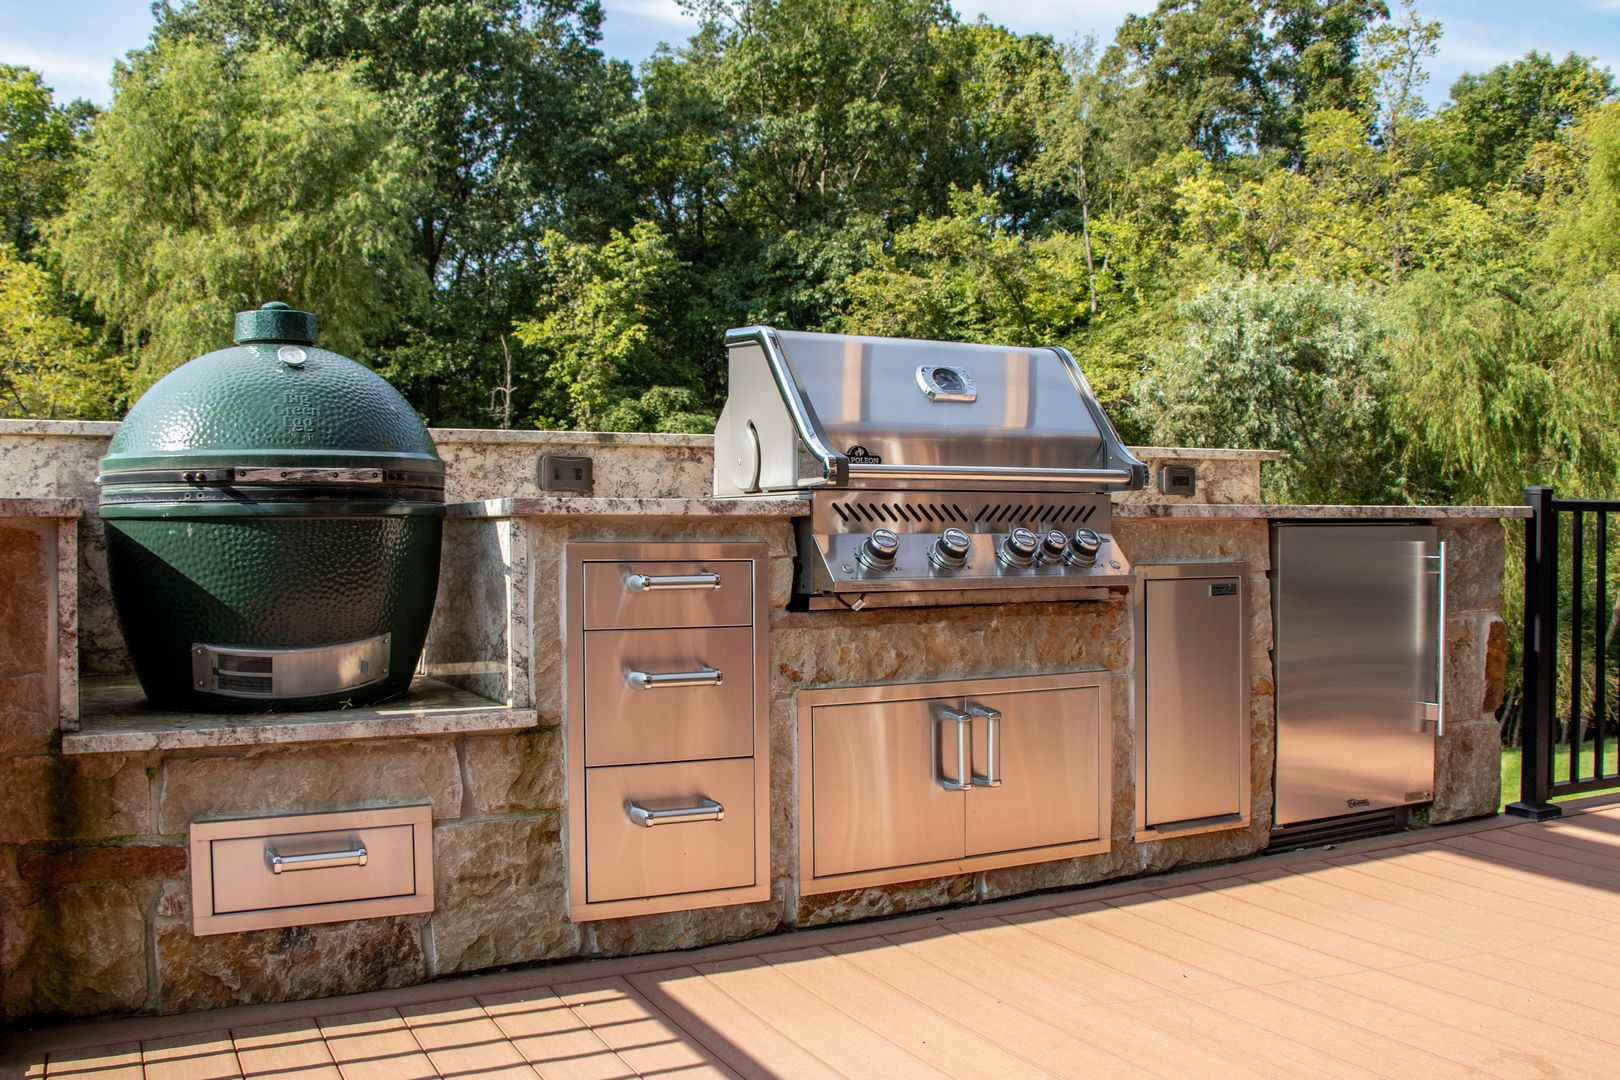 A grilling and beverage center located on a patio for convenience